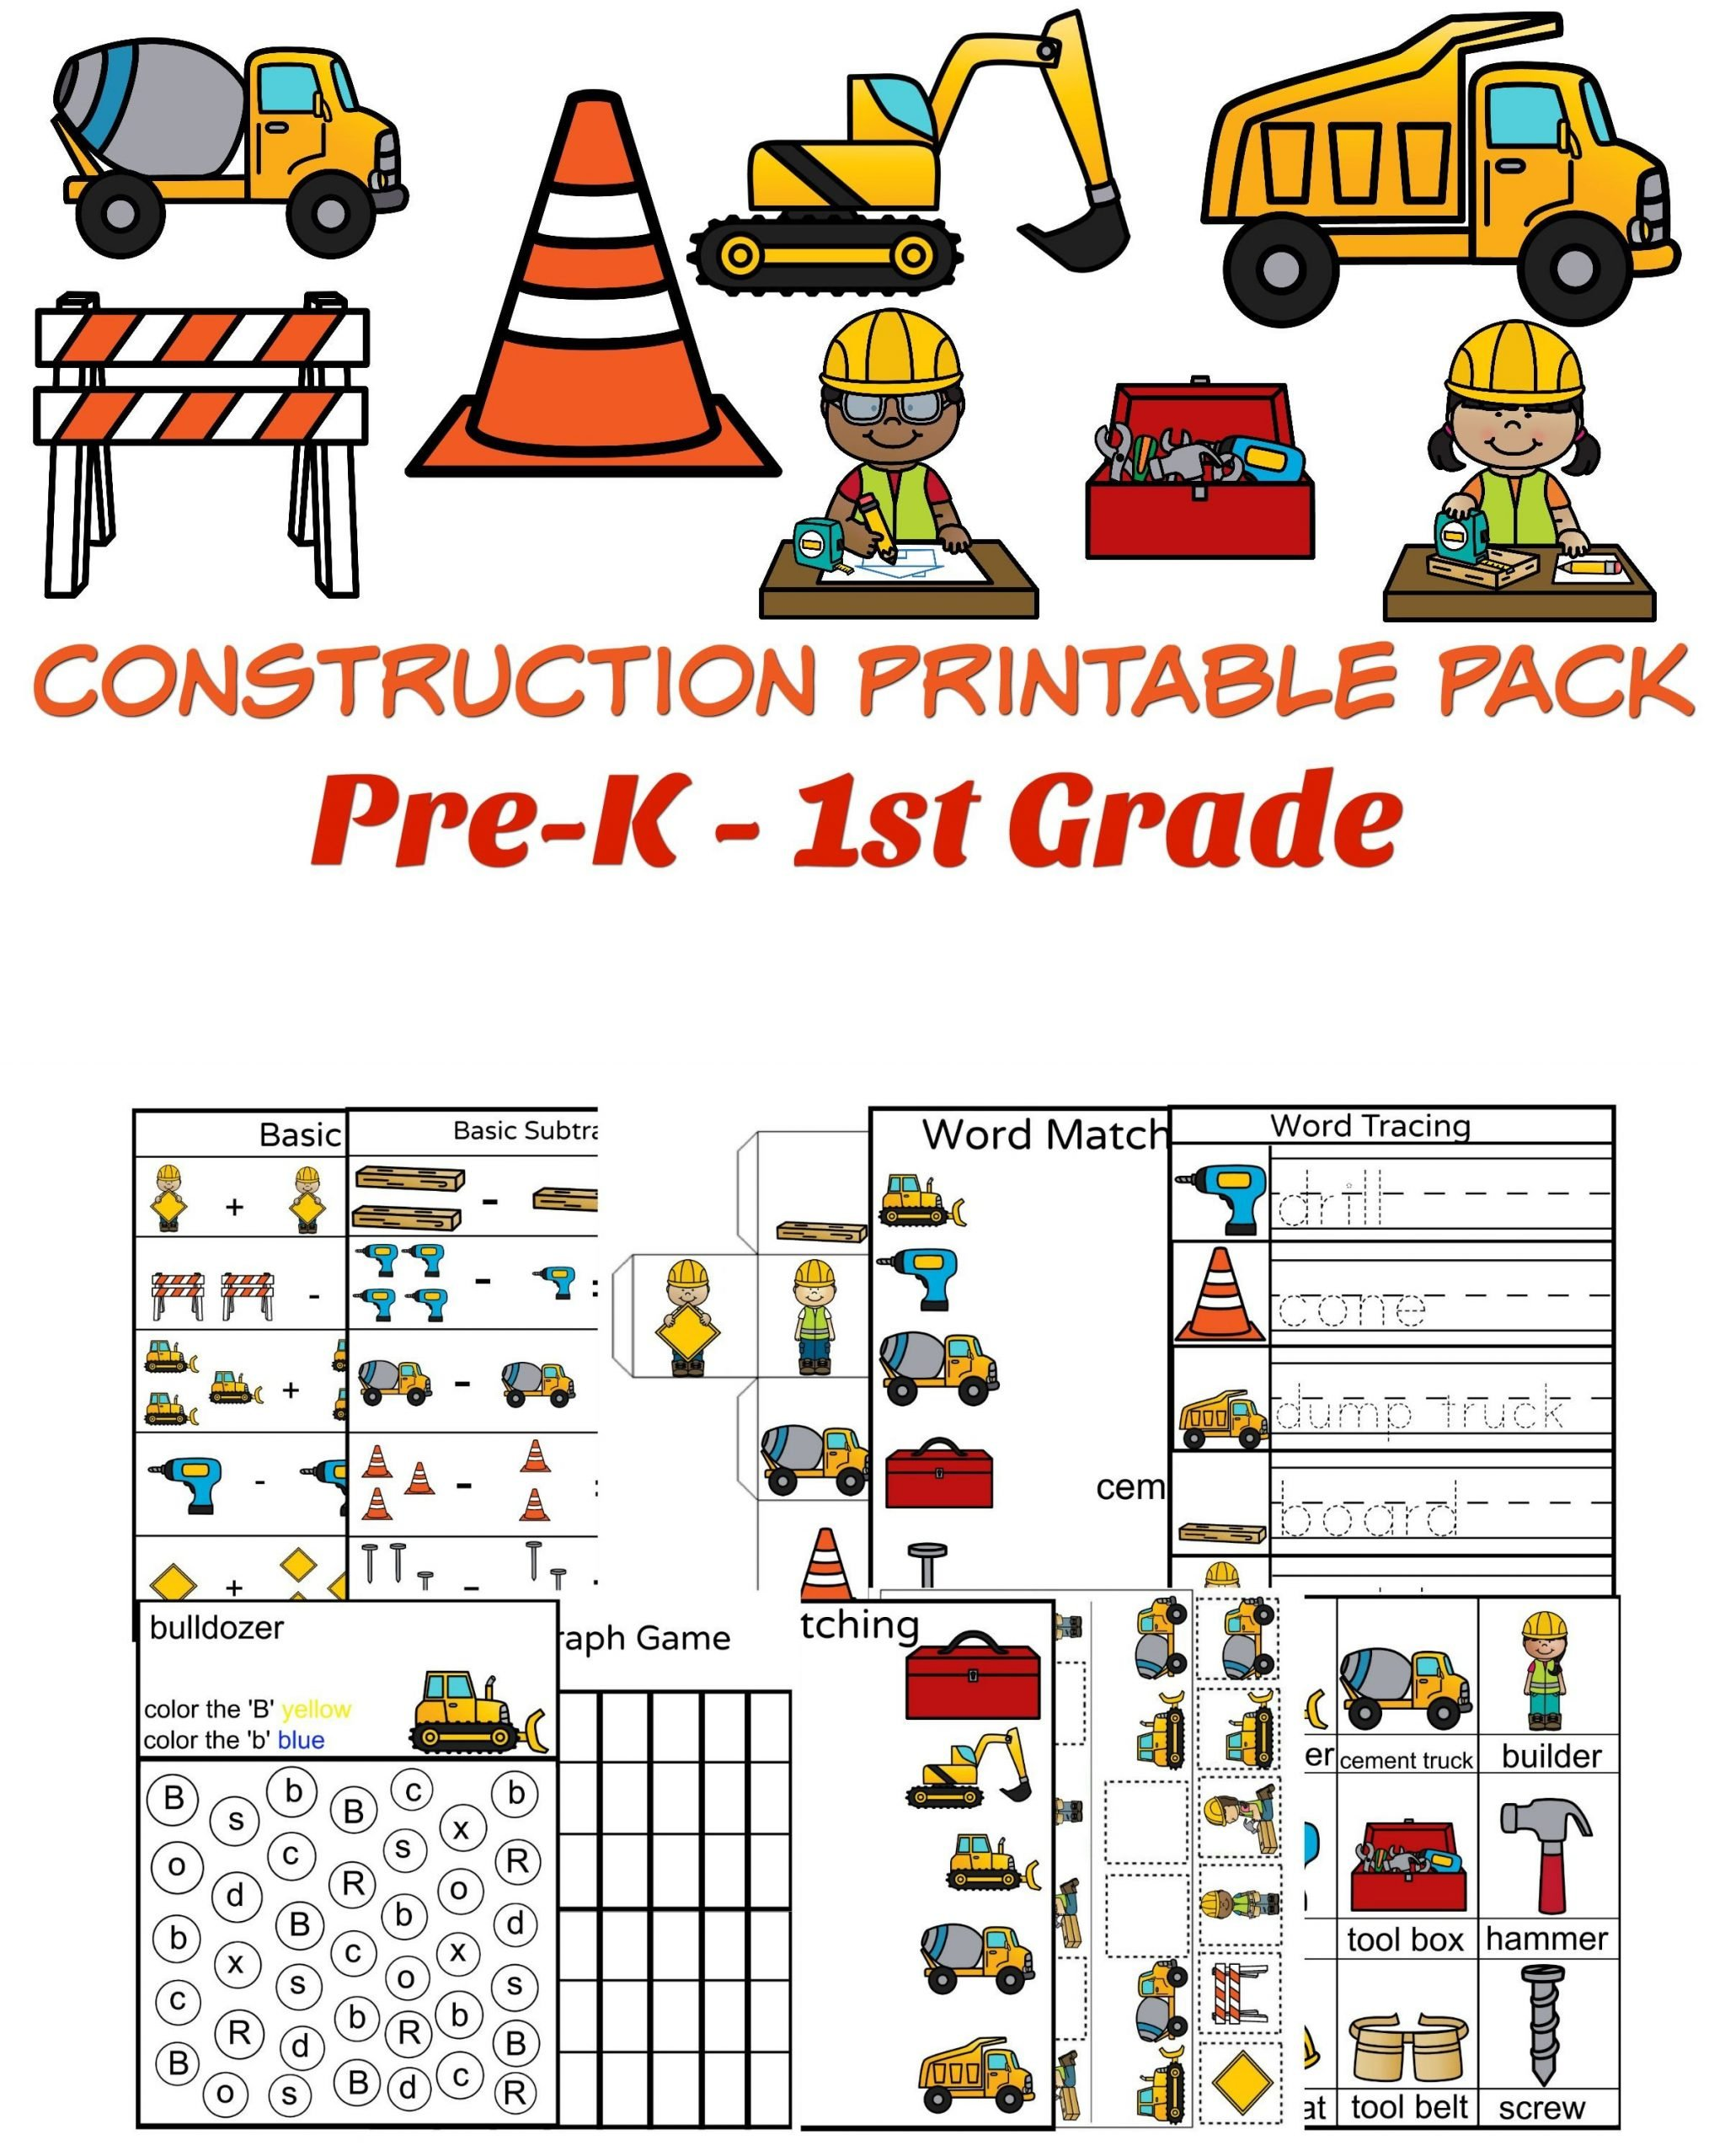 Construction Math Worksheets Free Construction Printable with Basic Math with Pictures